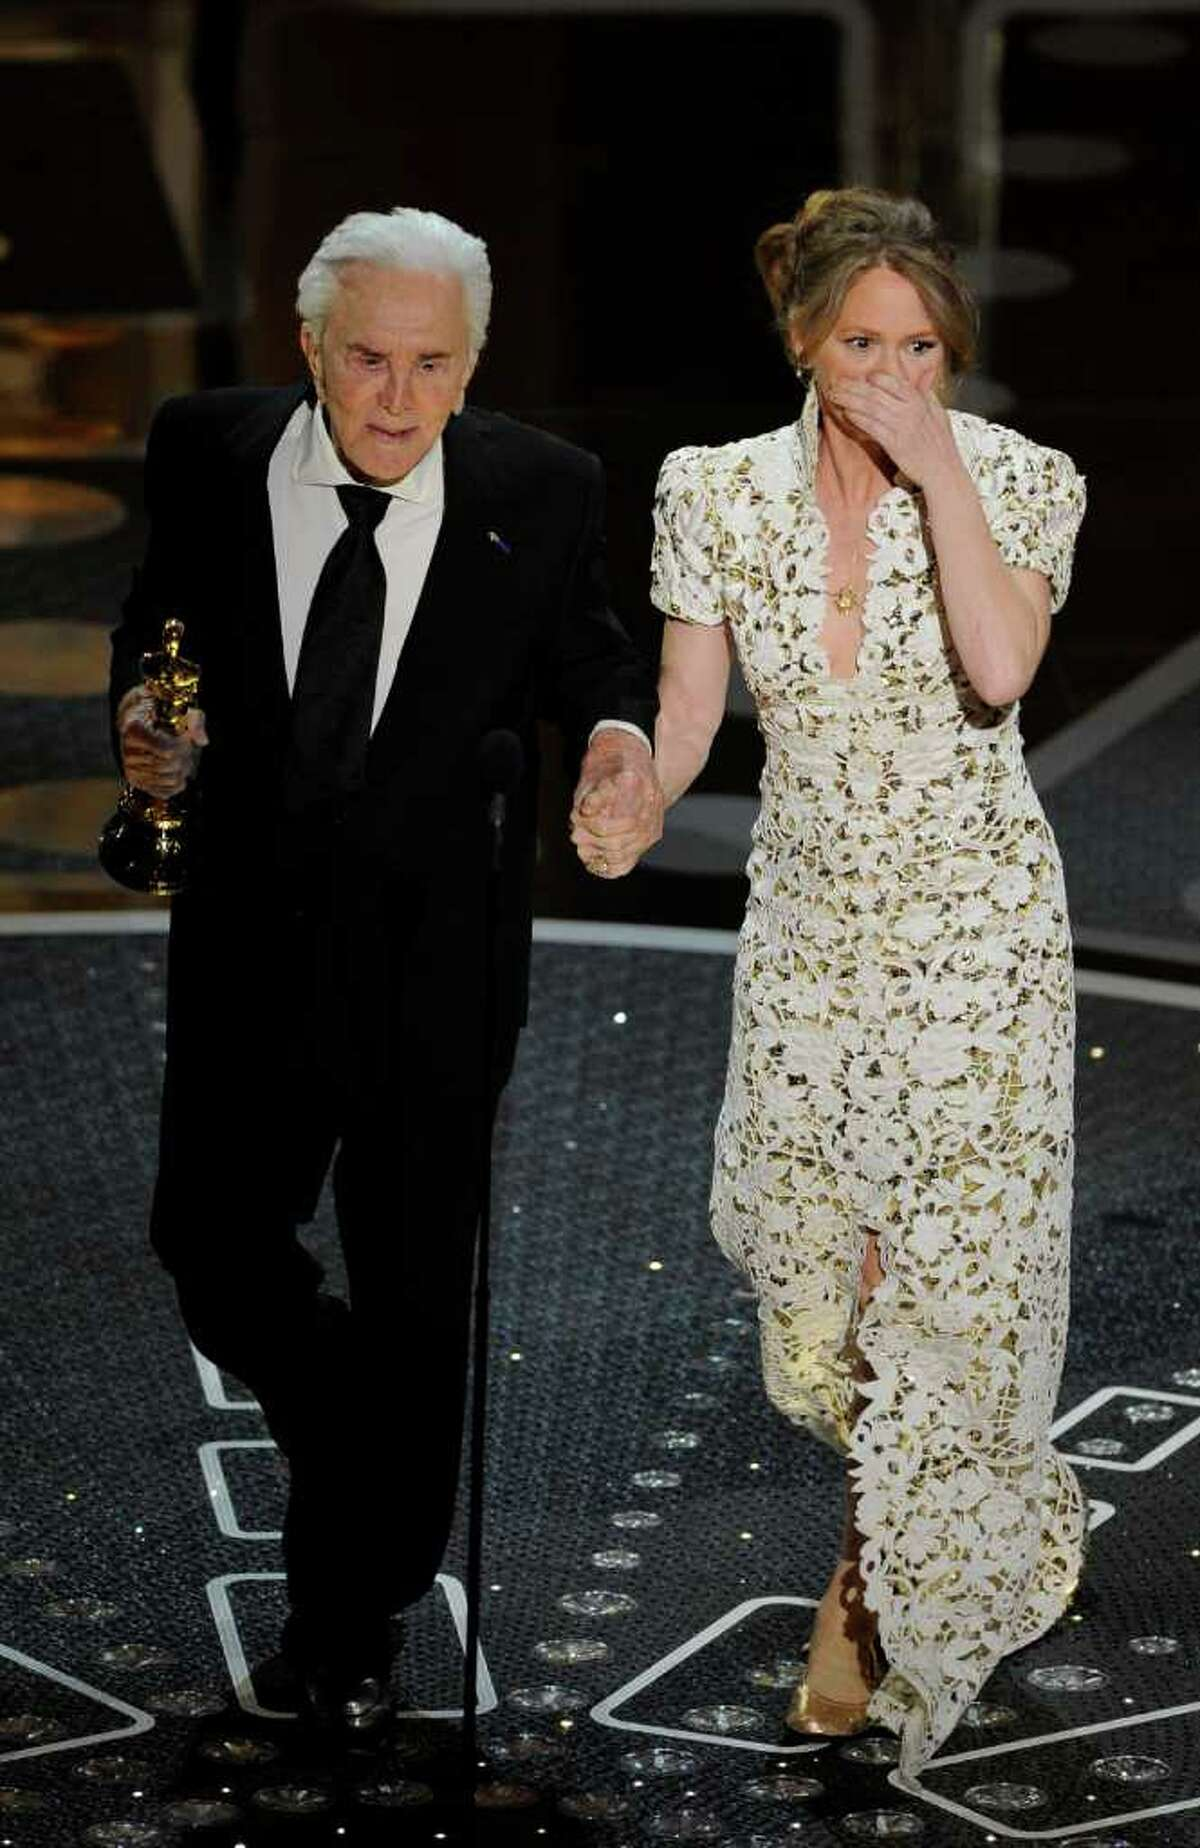 Kirk Douglass escorts Melissa Leo after she accepted the Oscar for best actress in a supporting role for